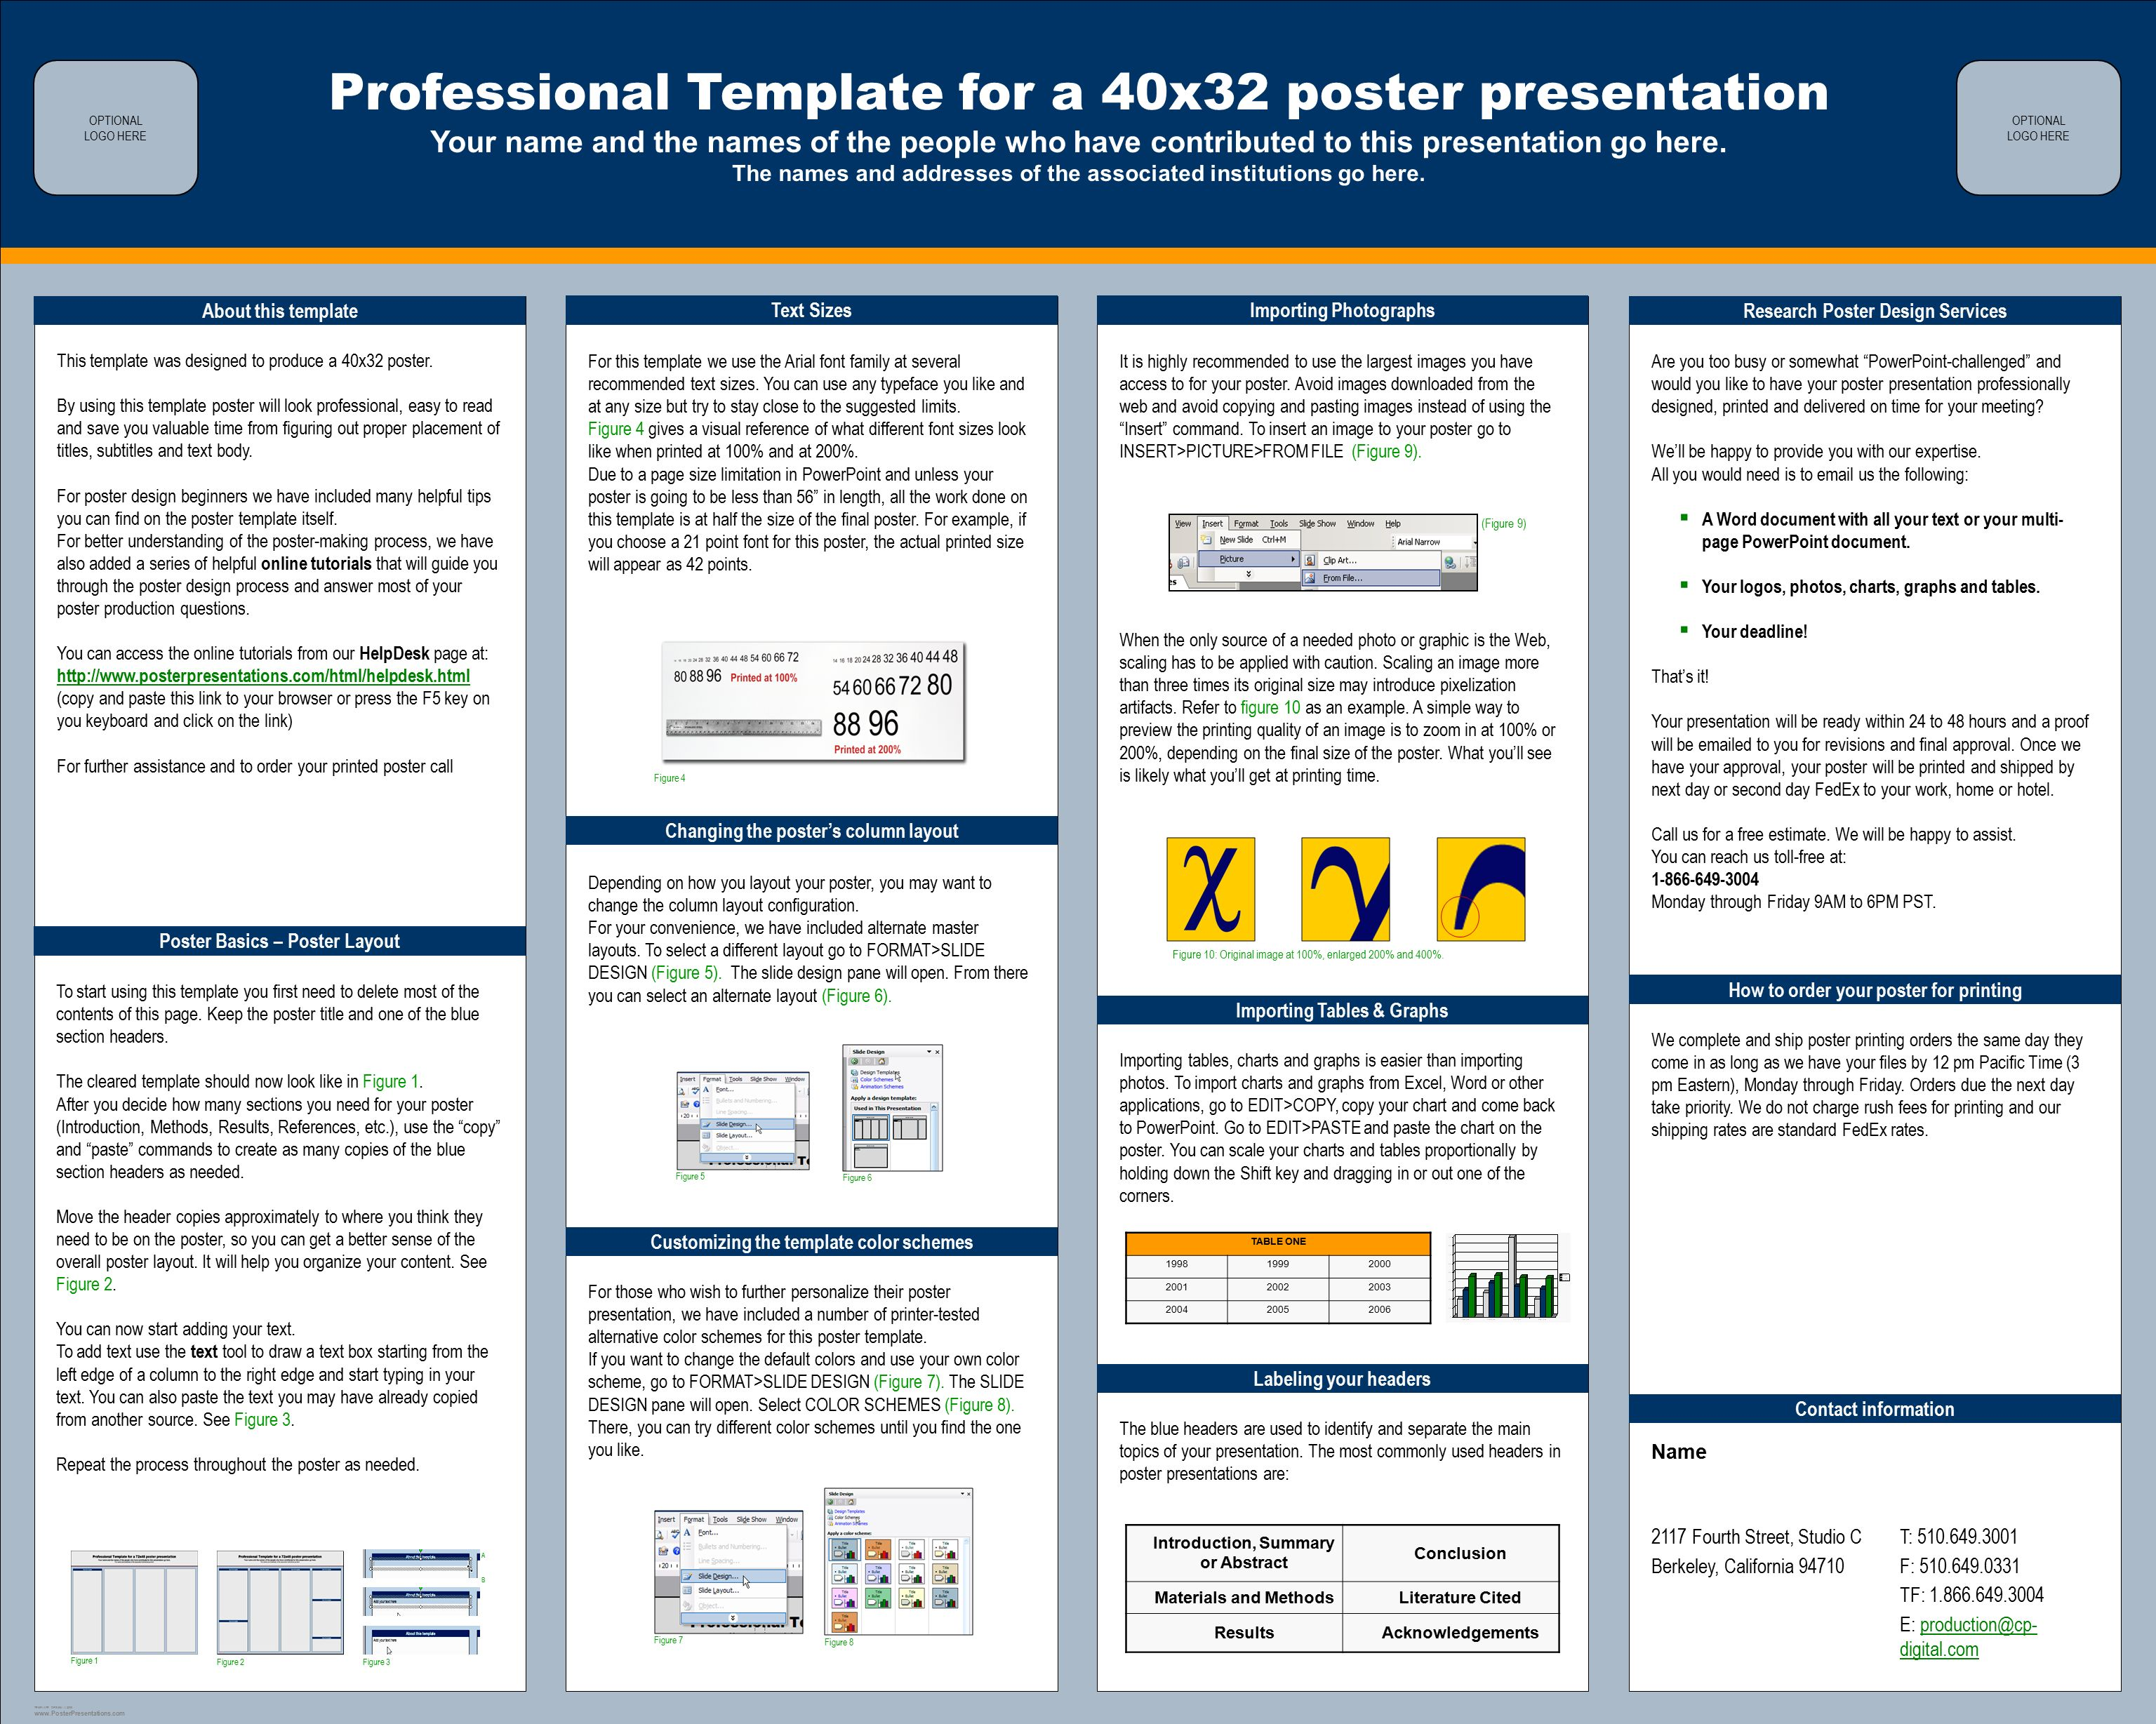 Professional Template for a 40x32 poster presentation - ppt download